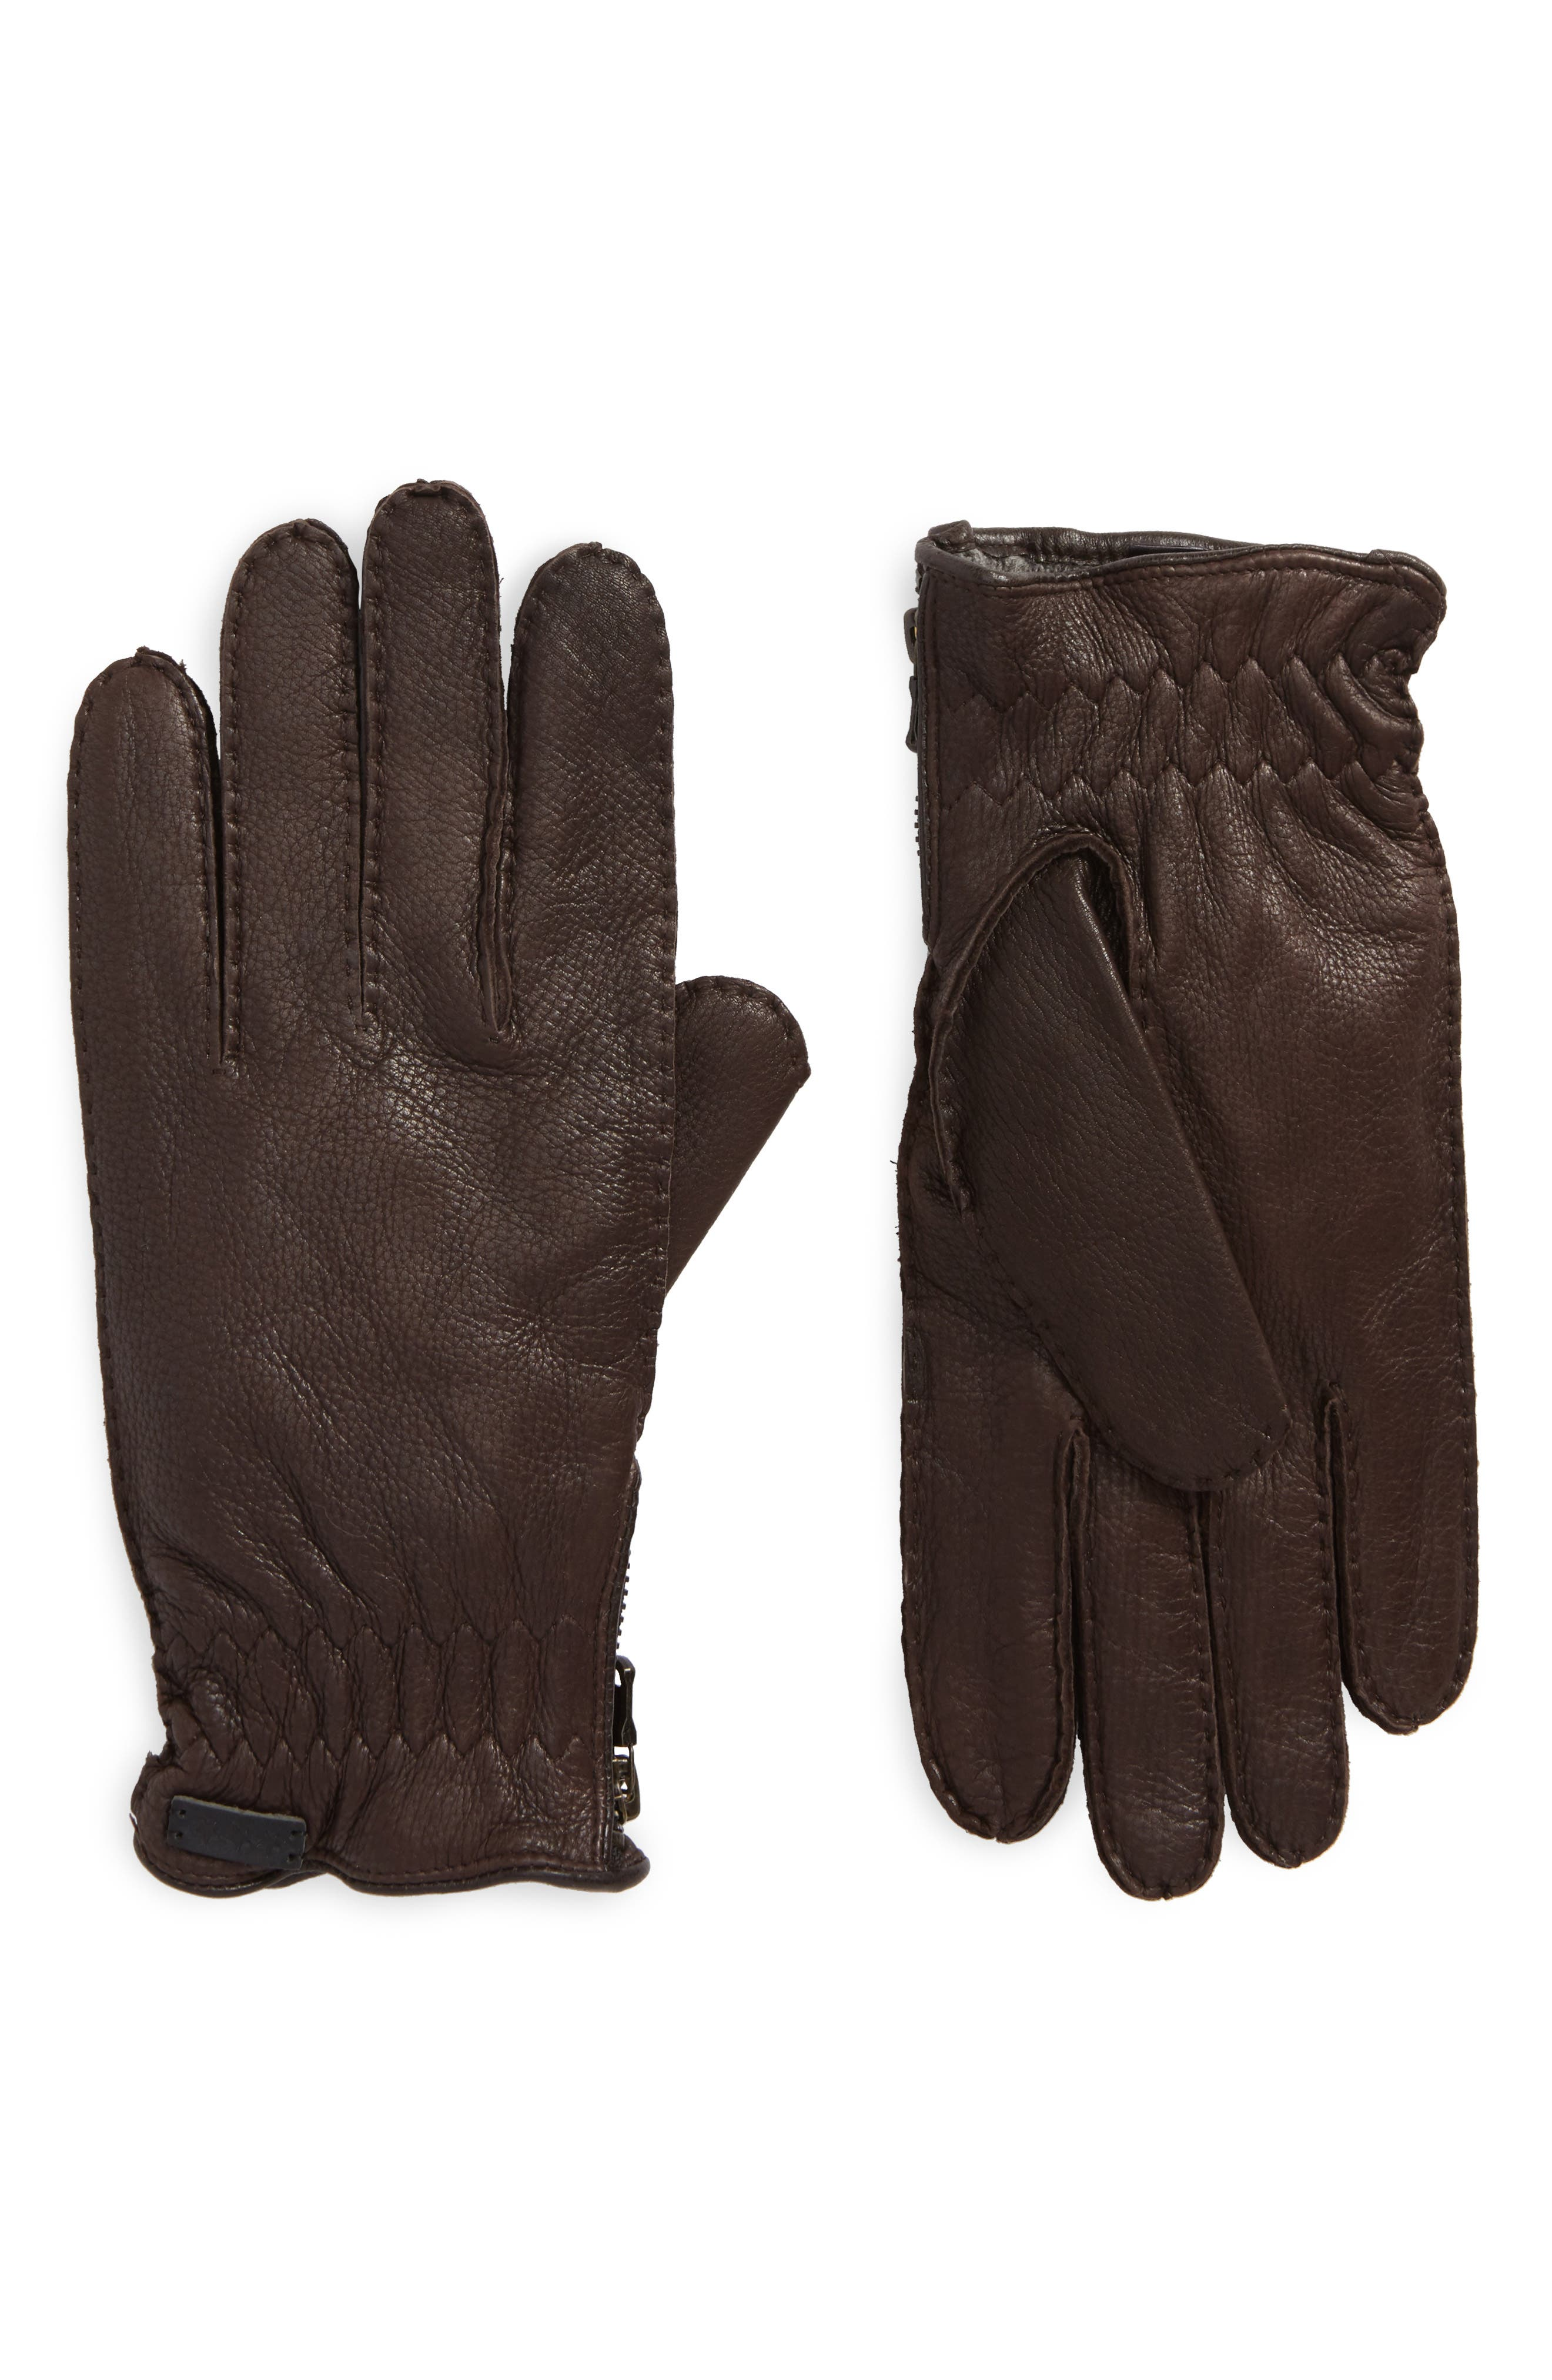 Deerskin Leather Gloves,                             Main thumbnail 1, color,                             Chocolate